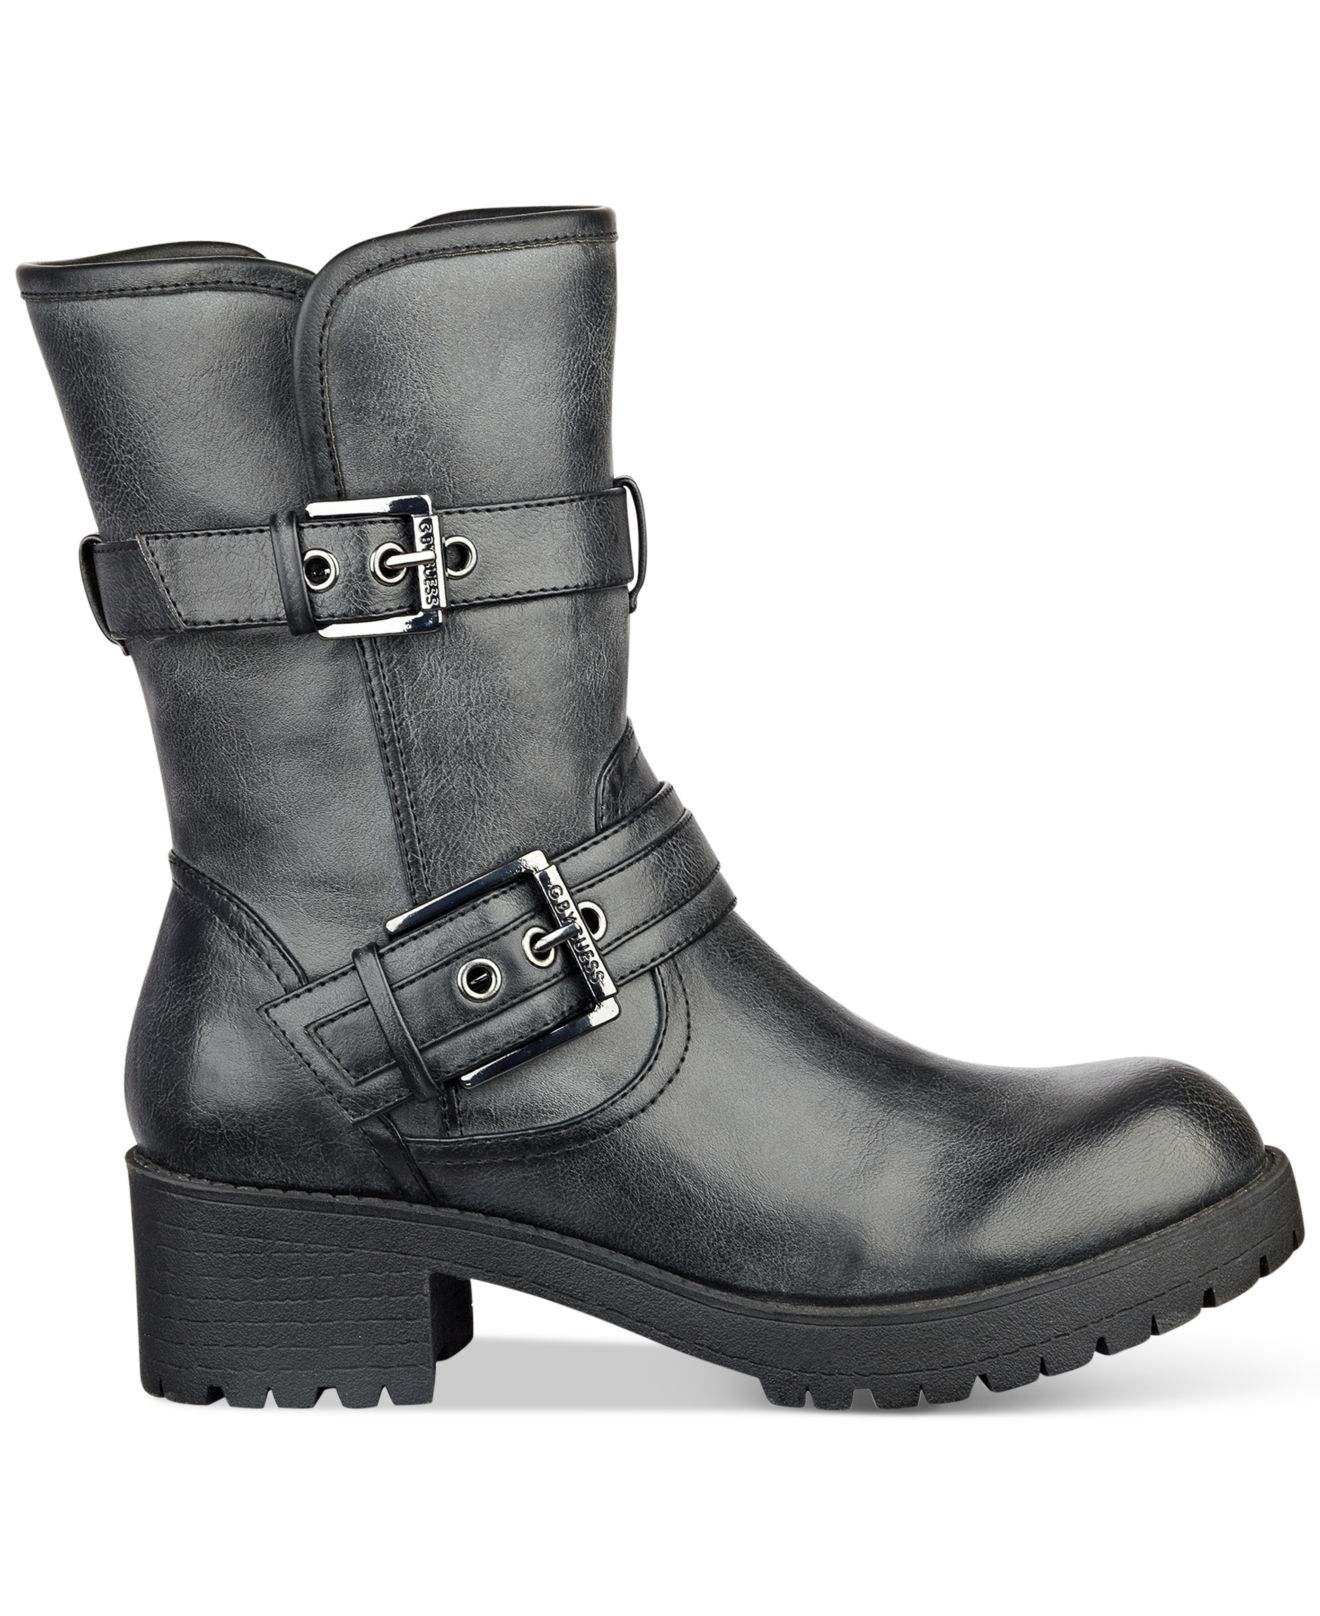 50d57247b G by Guess Minion Moto Booties in Black - Lyst